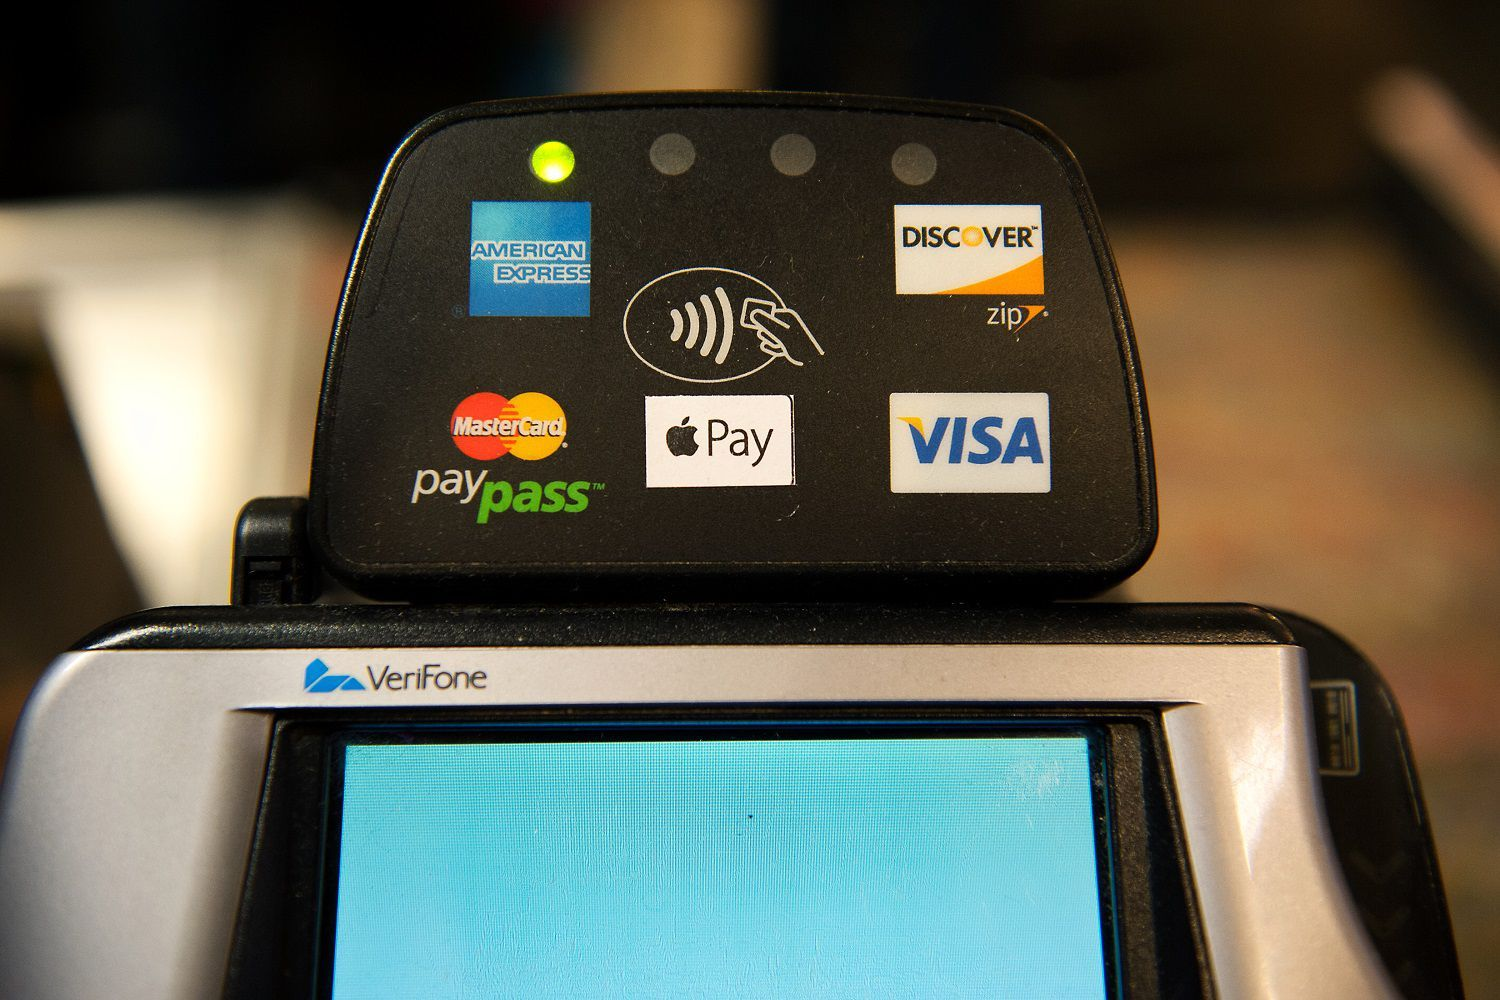 Nfc technology isnt just for payments heres how it